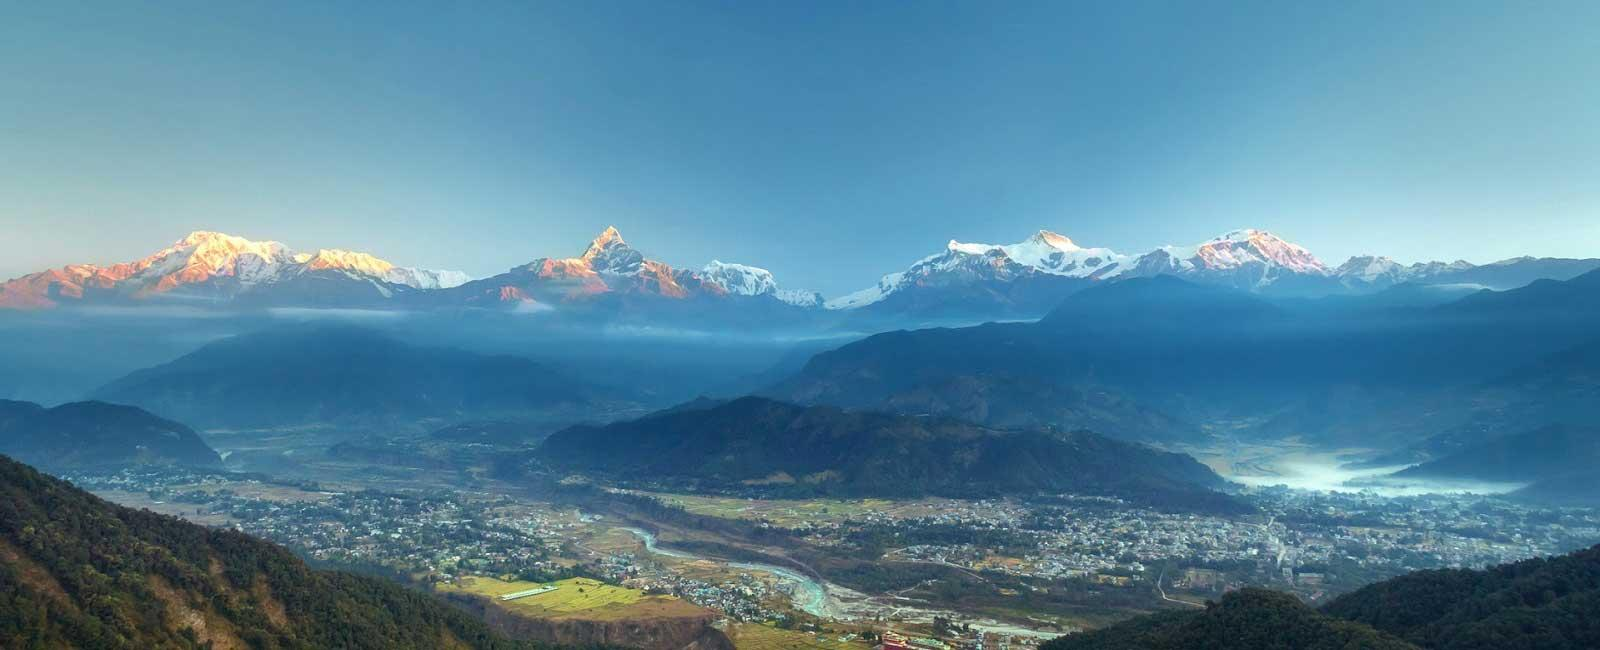 Muslim Friendly Tour in Nepal